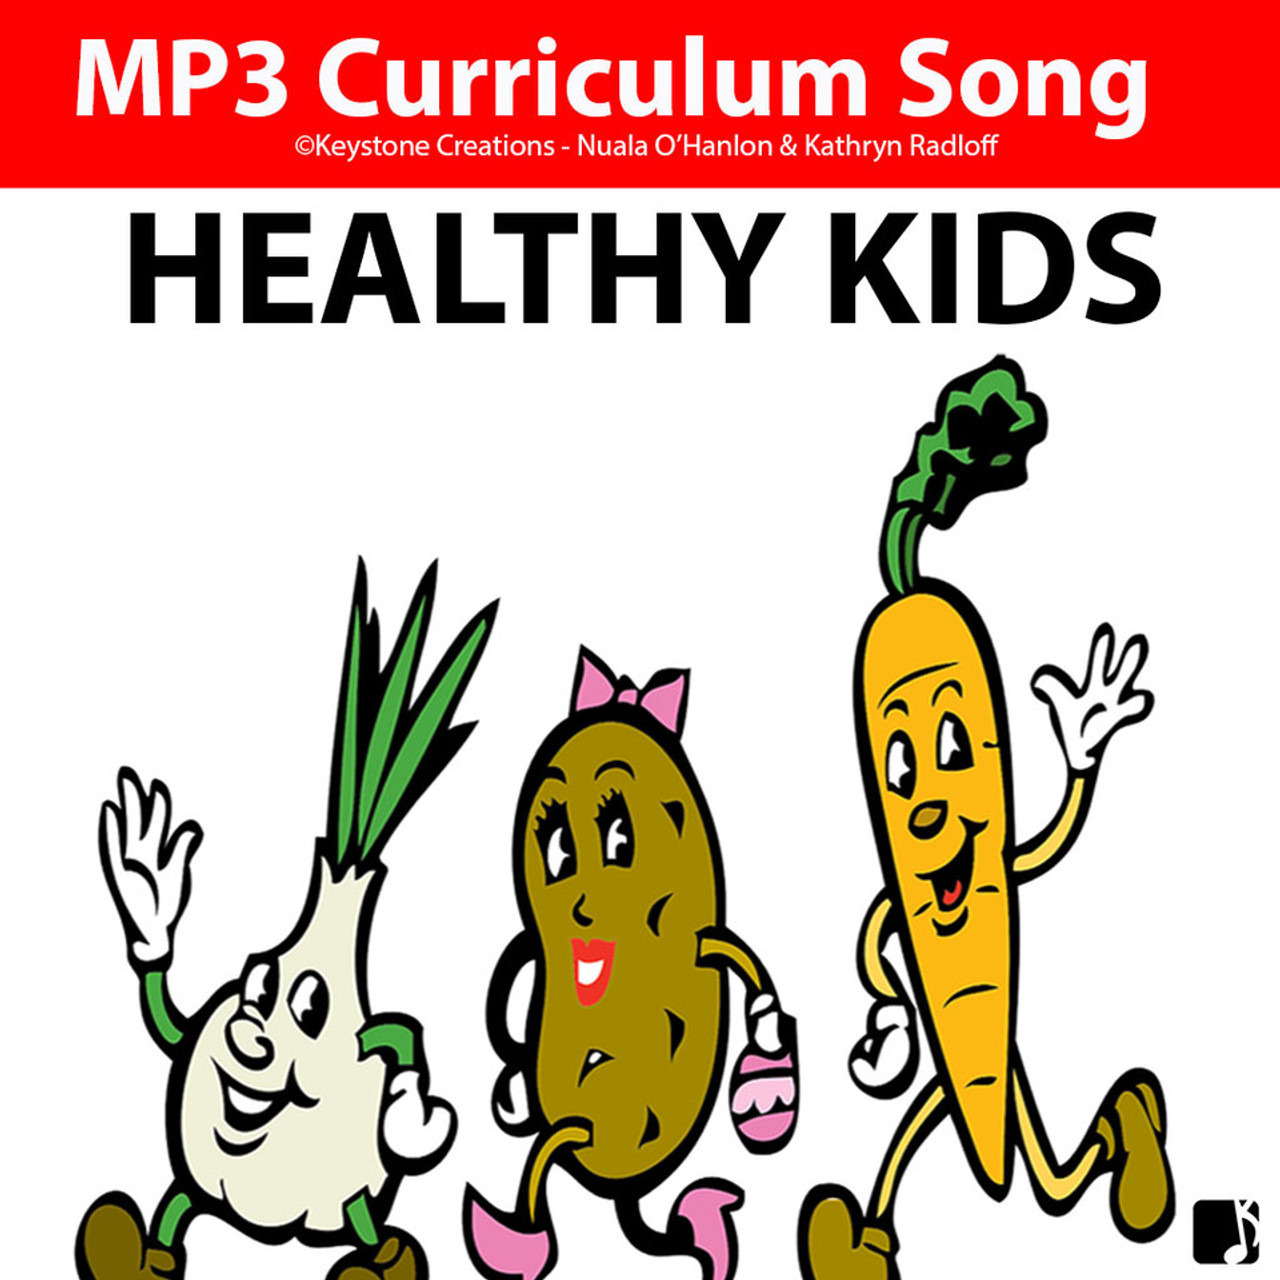 'HEALTHY KIDS' (Grades K-7) ~ Curriculum Song MP3 & Lesson Materials